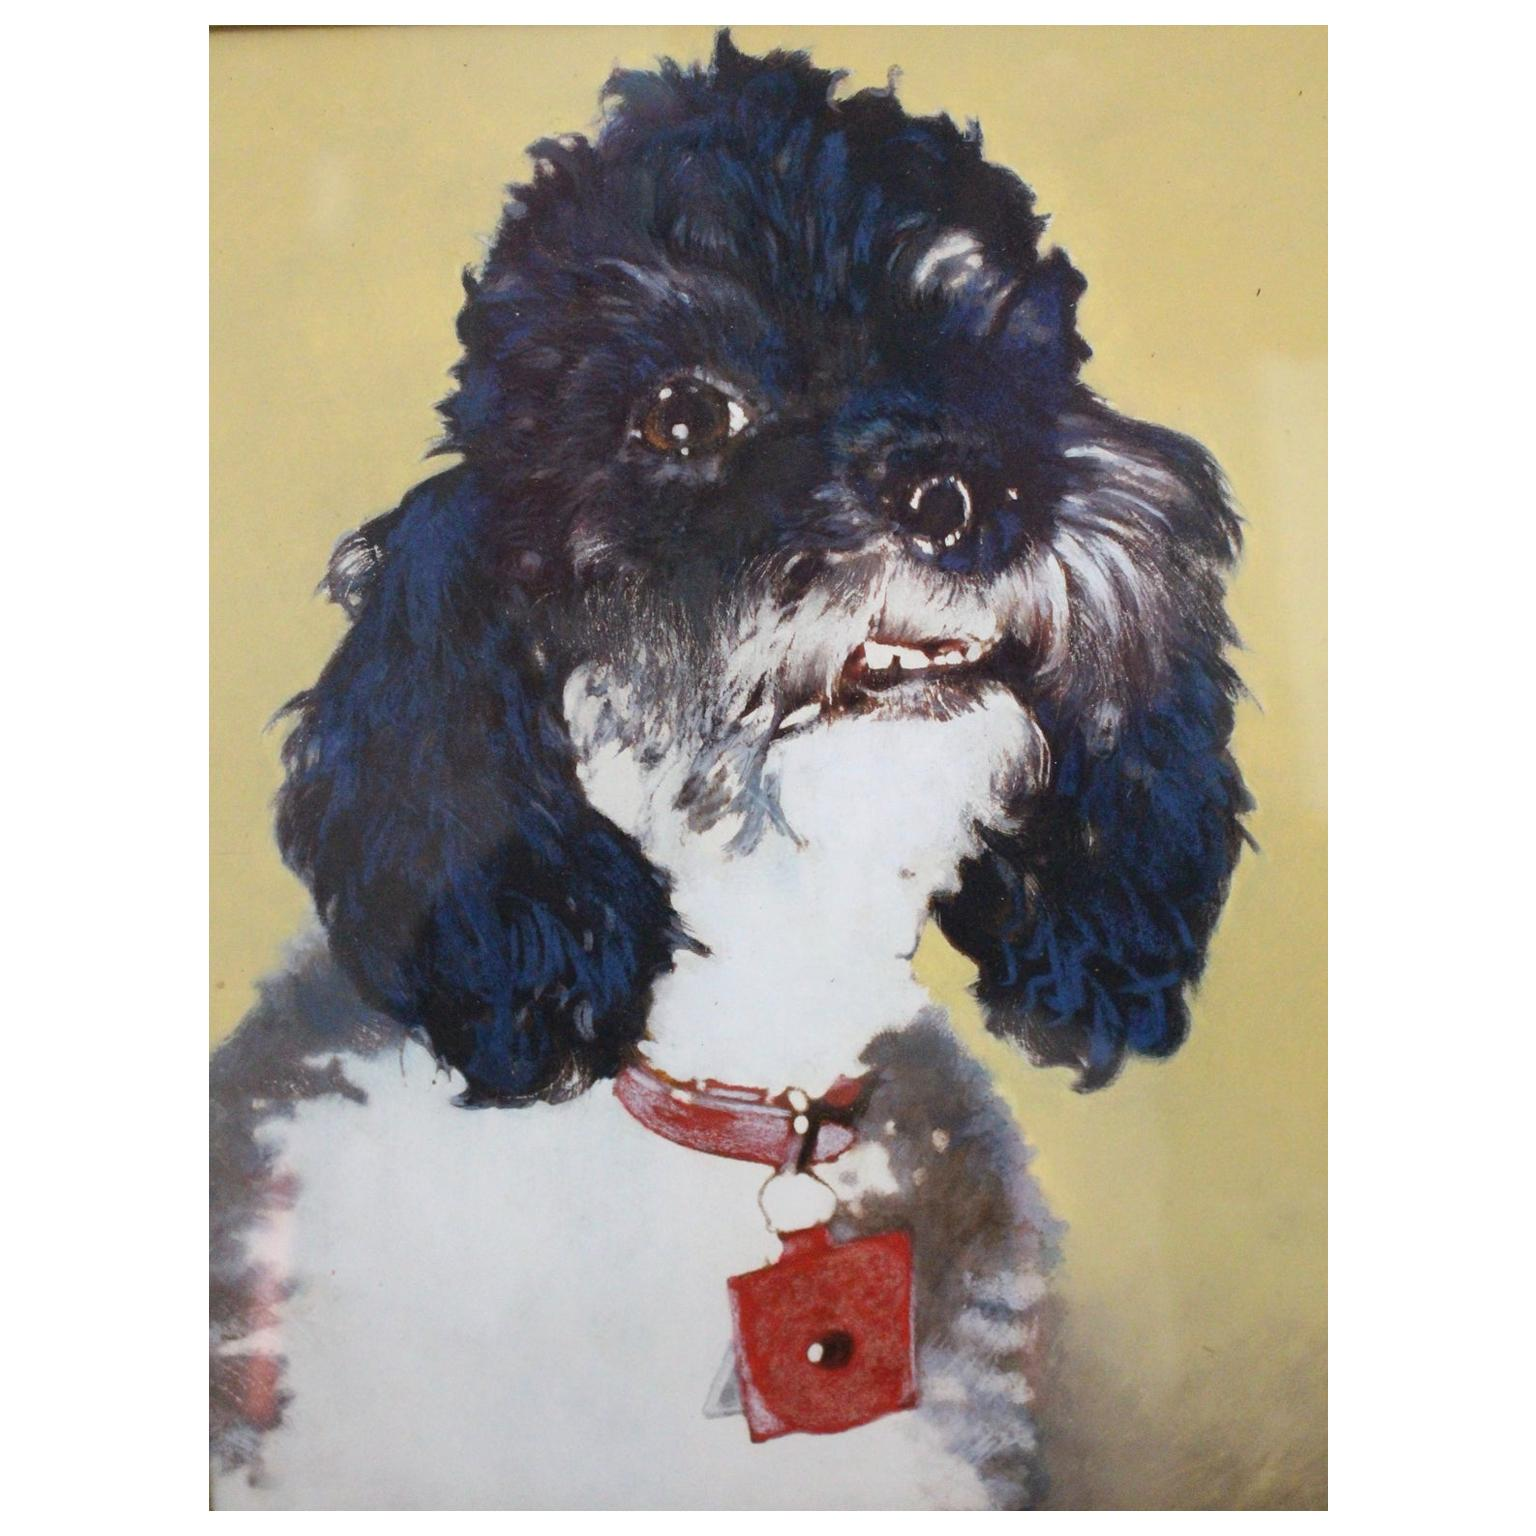 Mid-Century Modern Vintage Painting with Poodle Motif, circa 1950